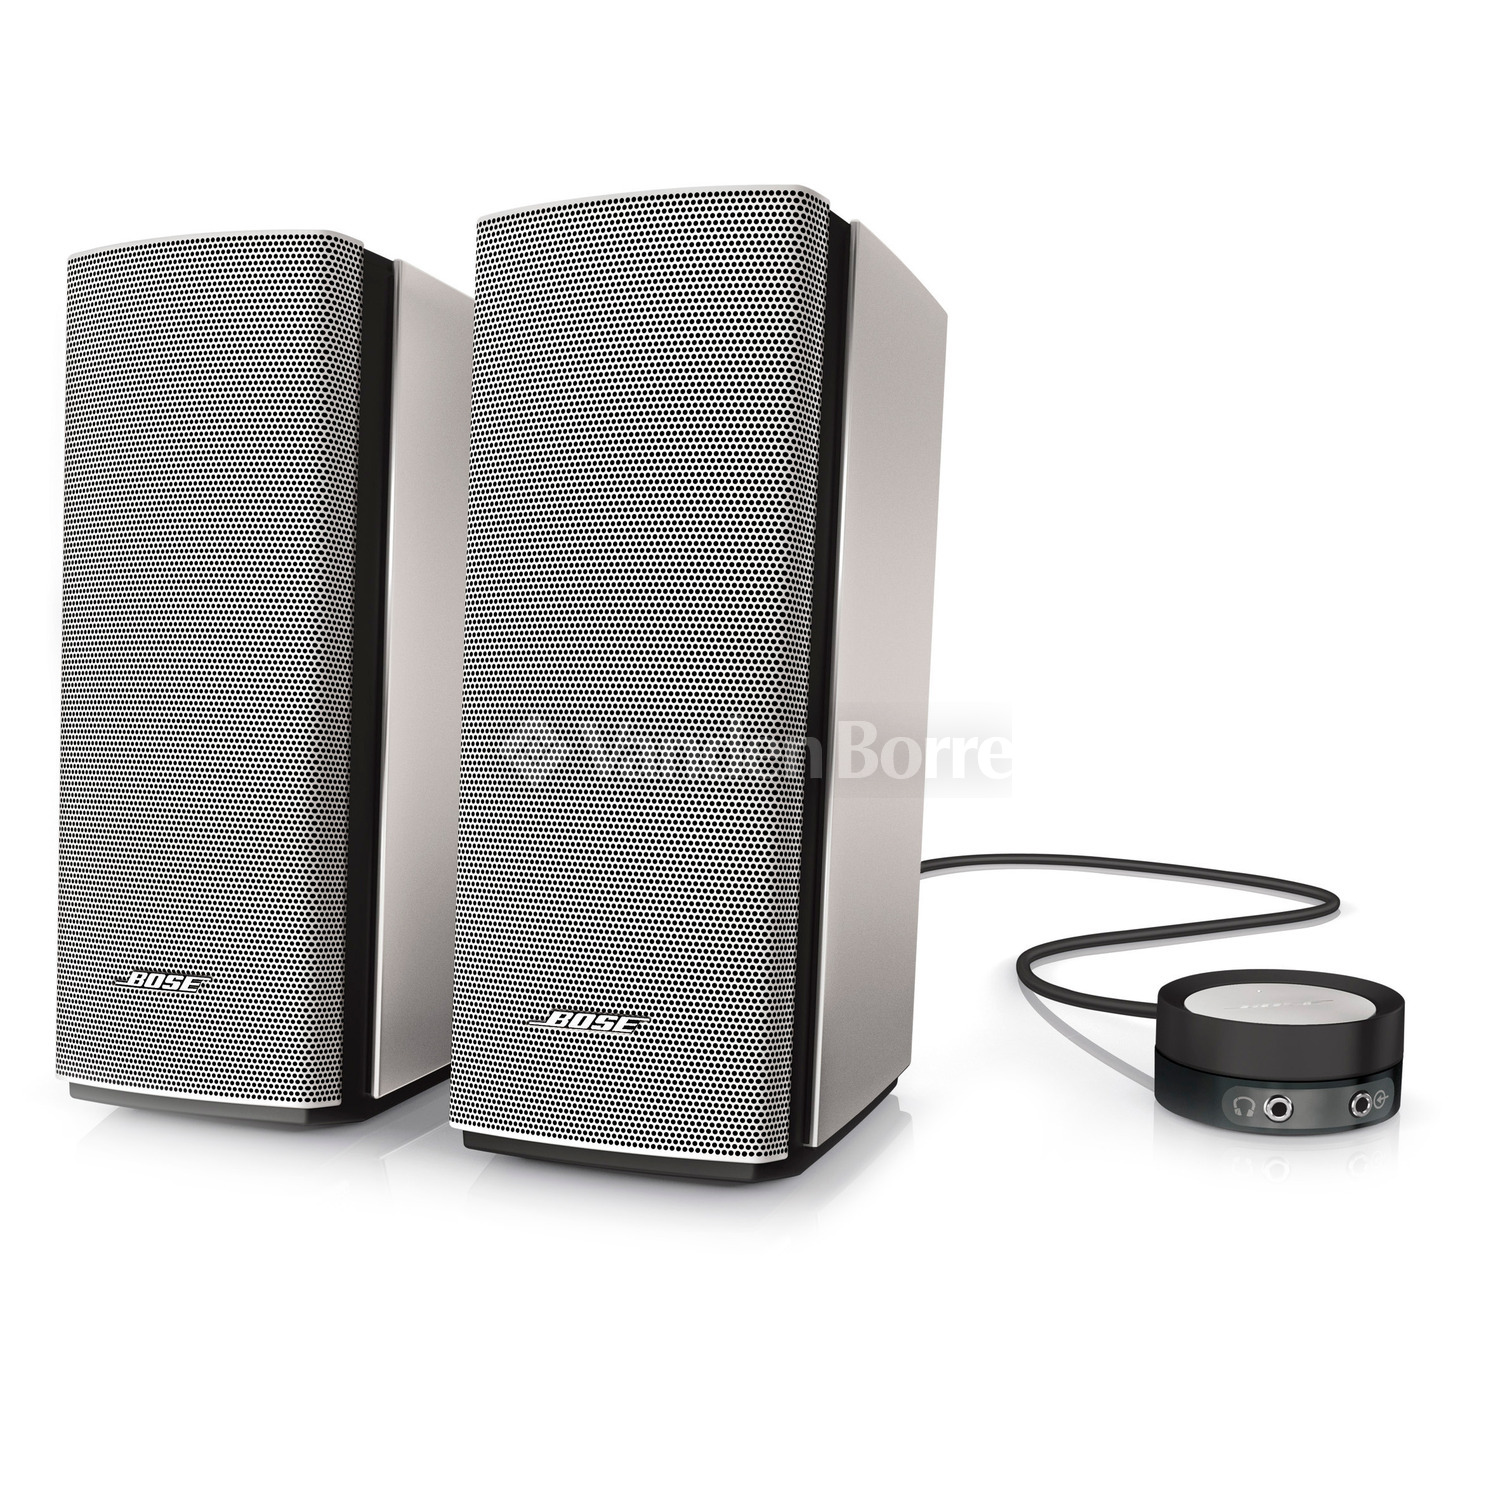 https://www.vandenborre.be/WEB/images/products/superzoom/bose_companion-20_8929270_4.jpg